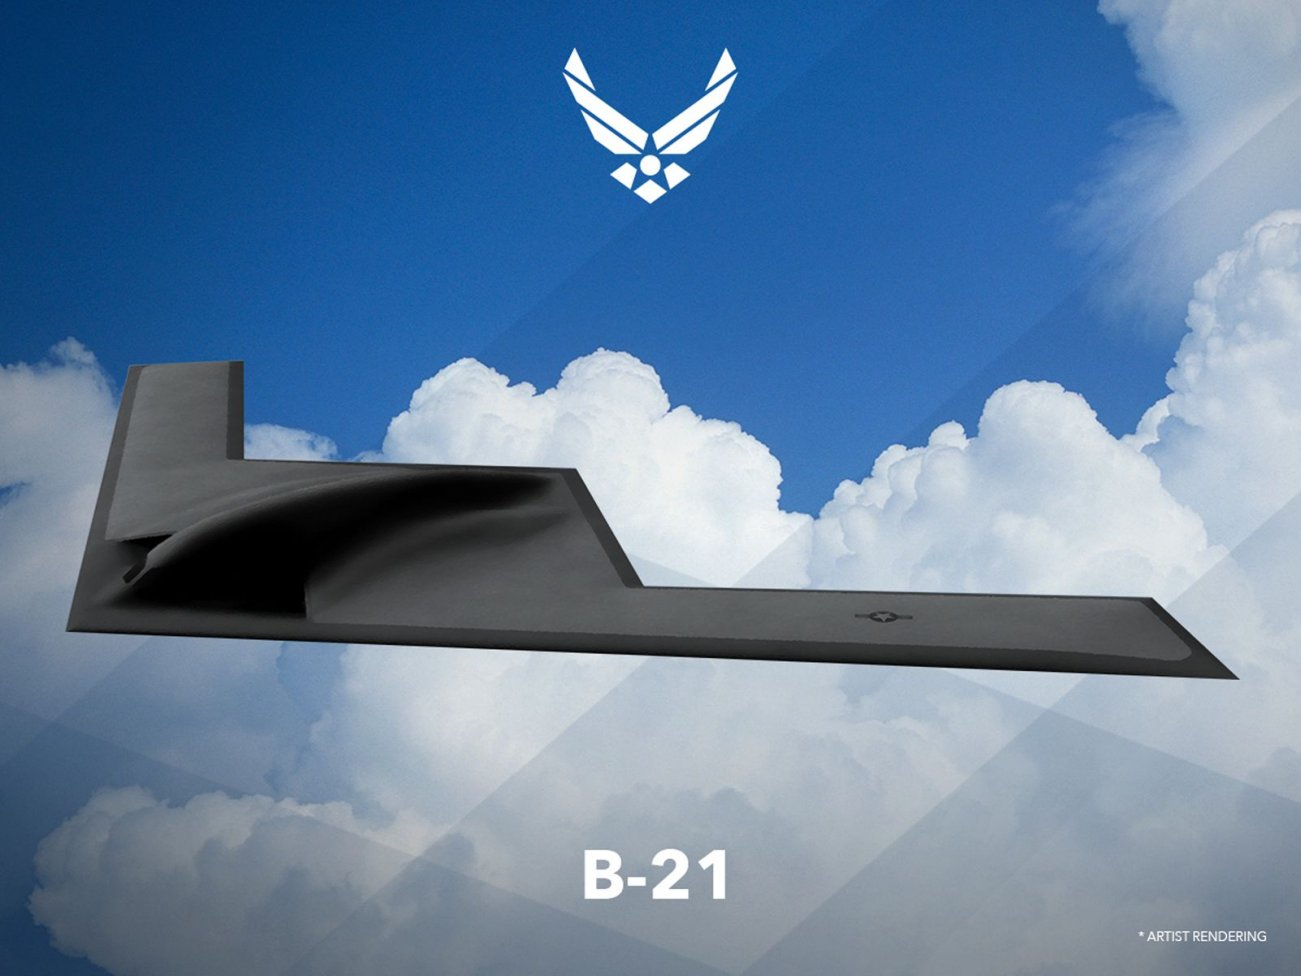 Why the B-21 Stealth Bomber Is Going to Be Unstoppable